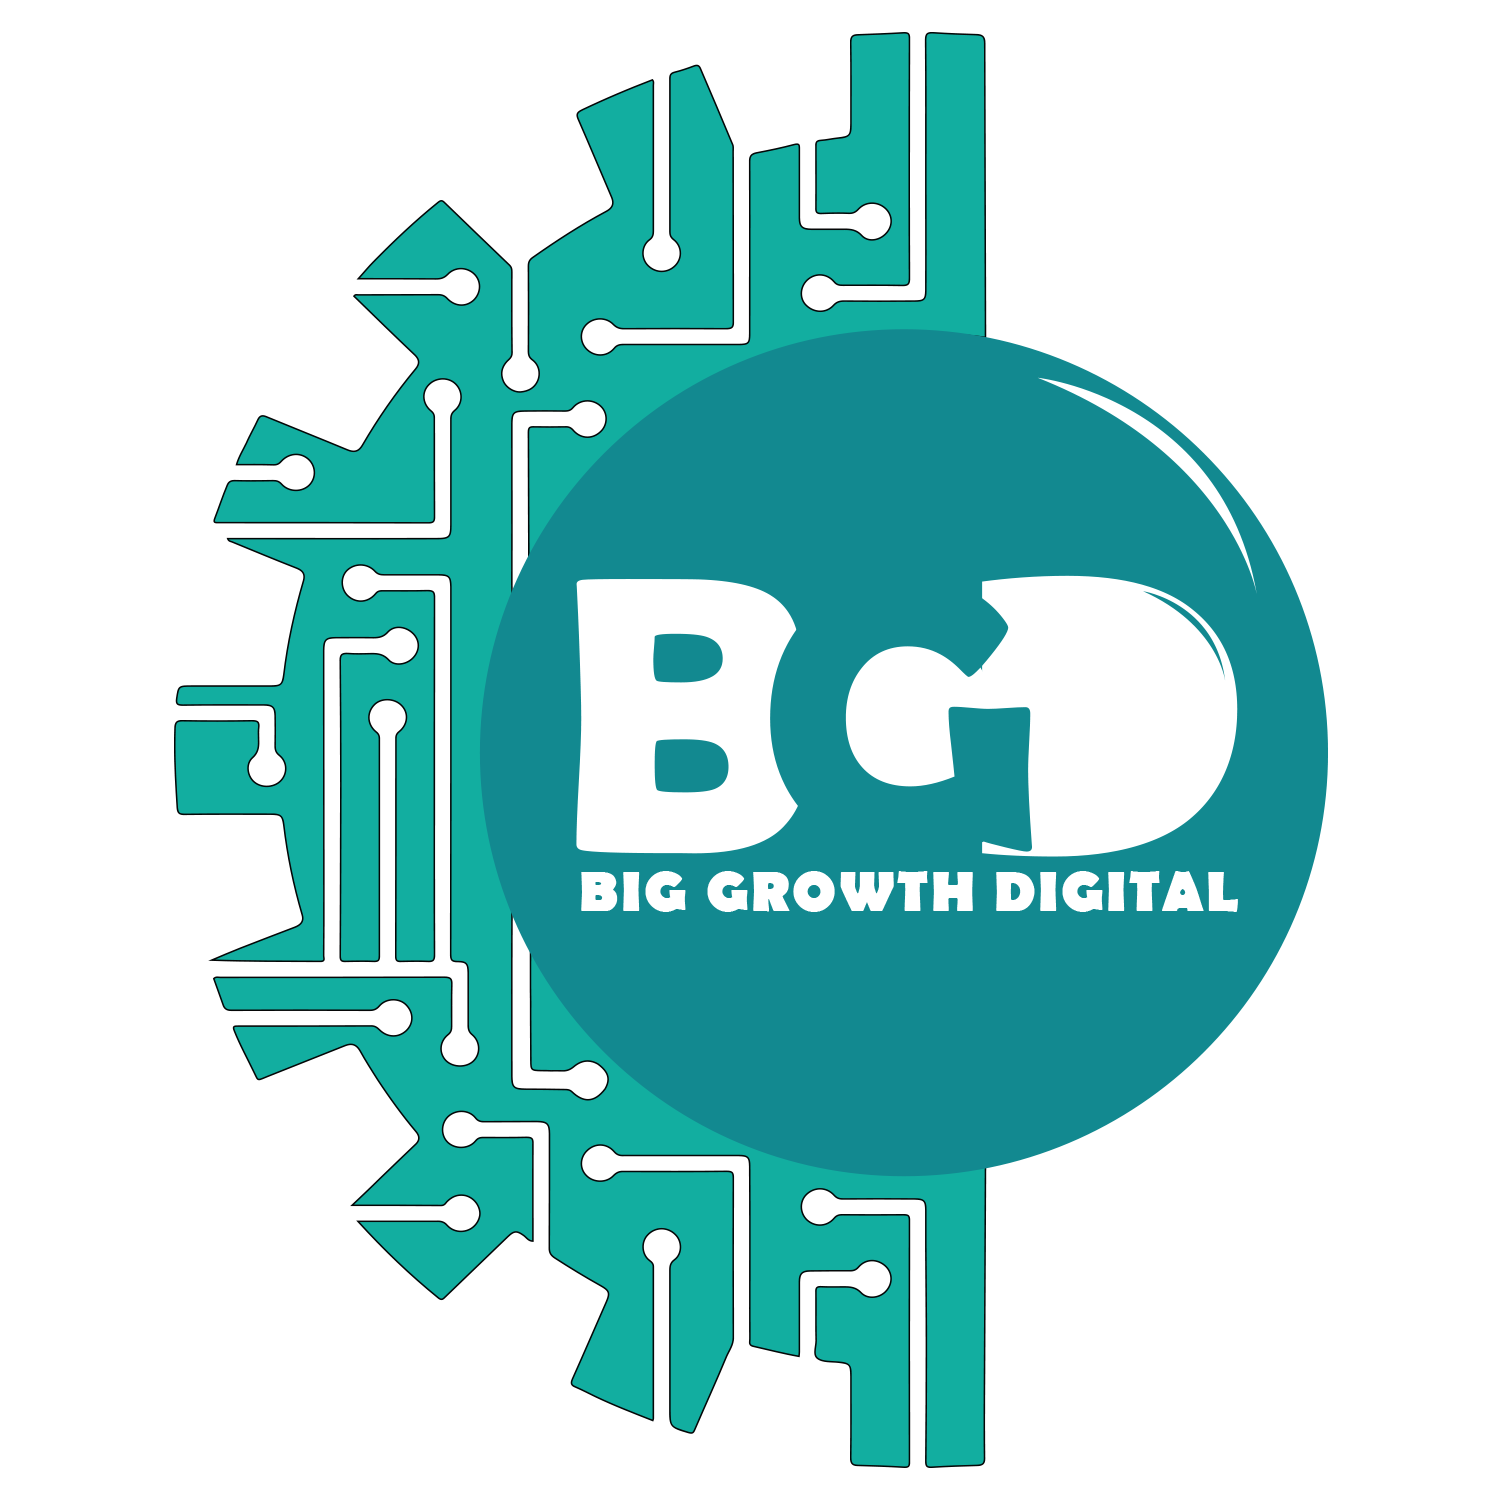 Big Growth Digital